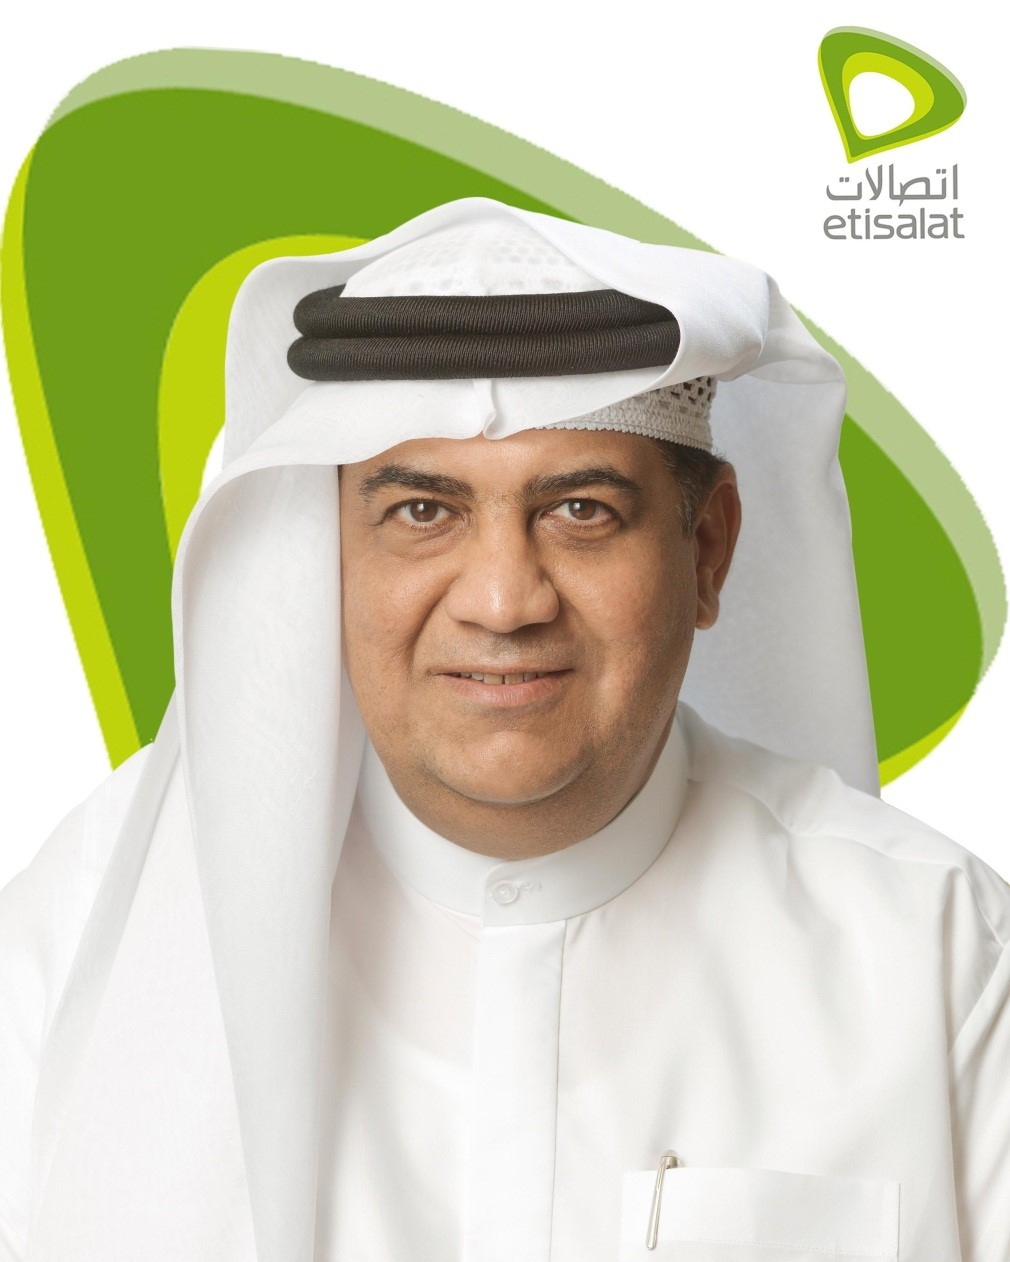 Al-Abdooli appointed CEO of Etisalat Group - Daily News Egypt